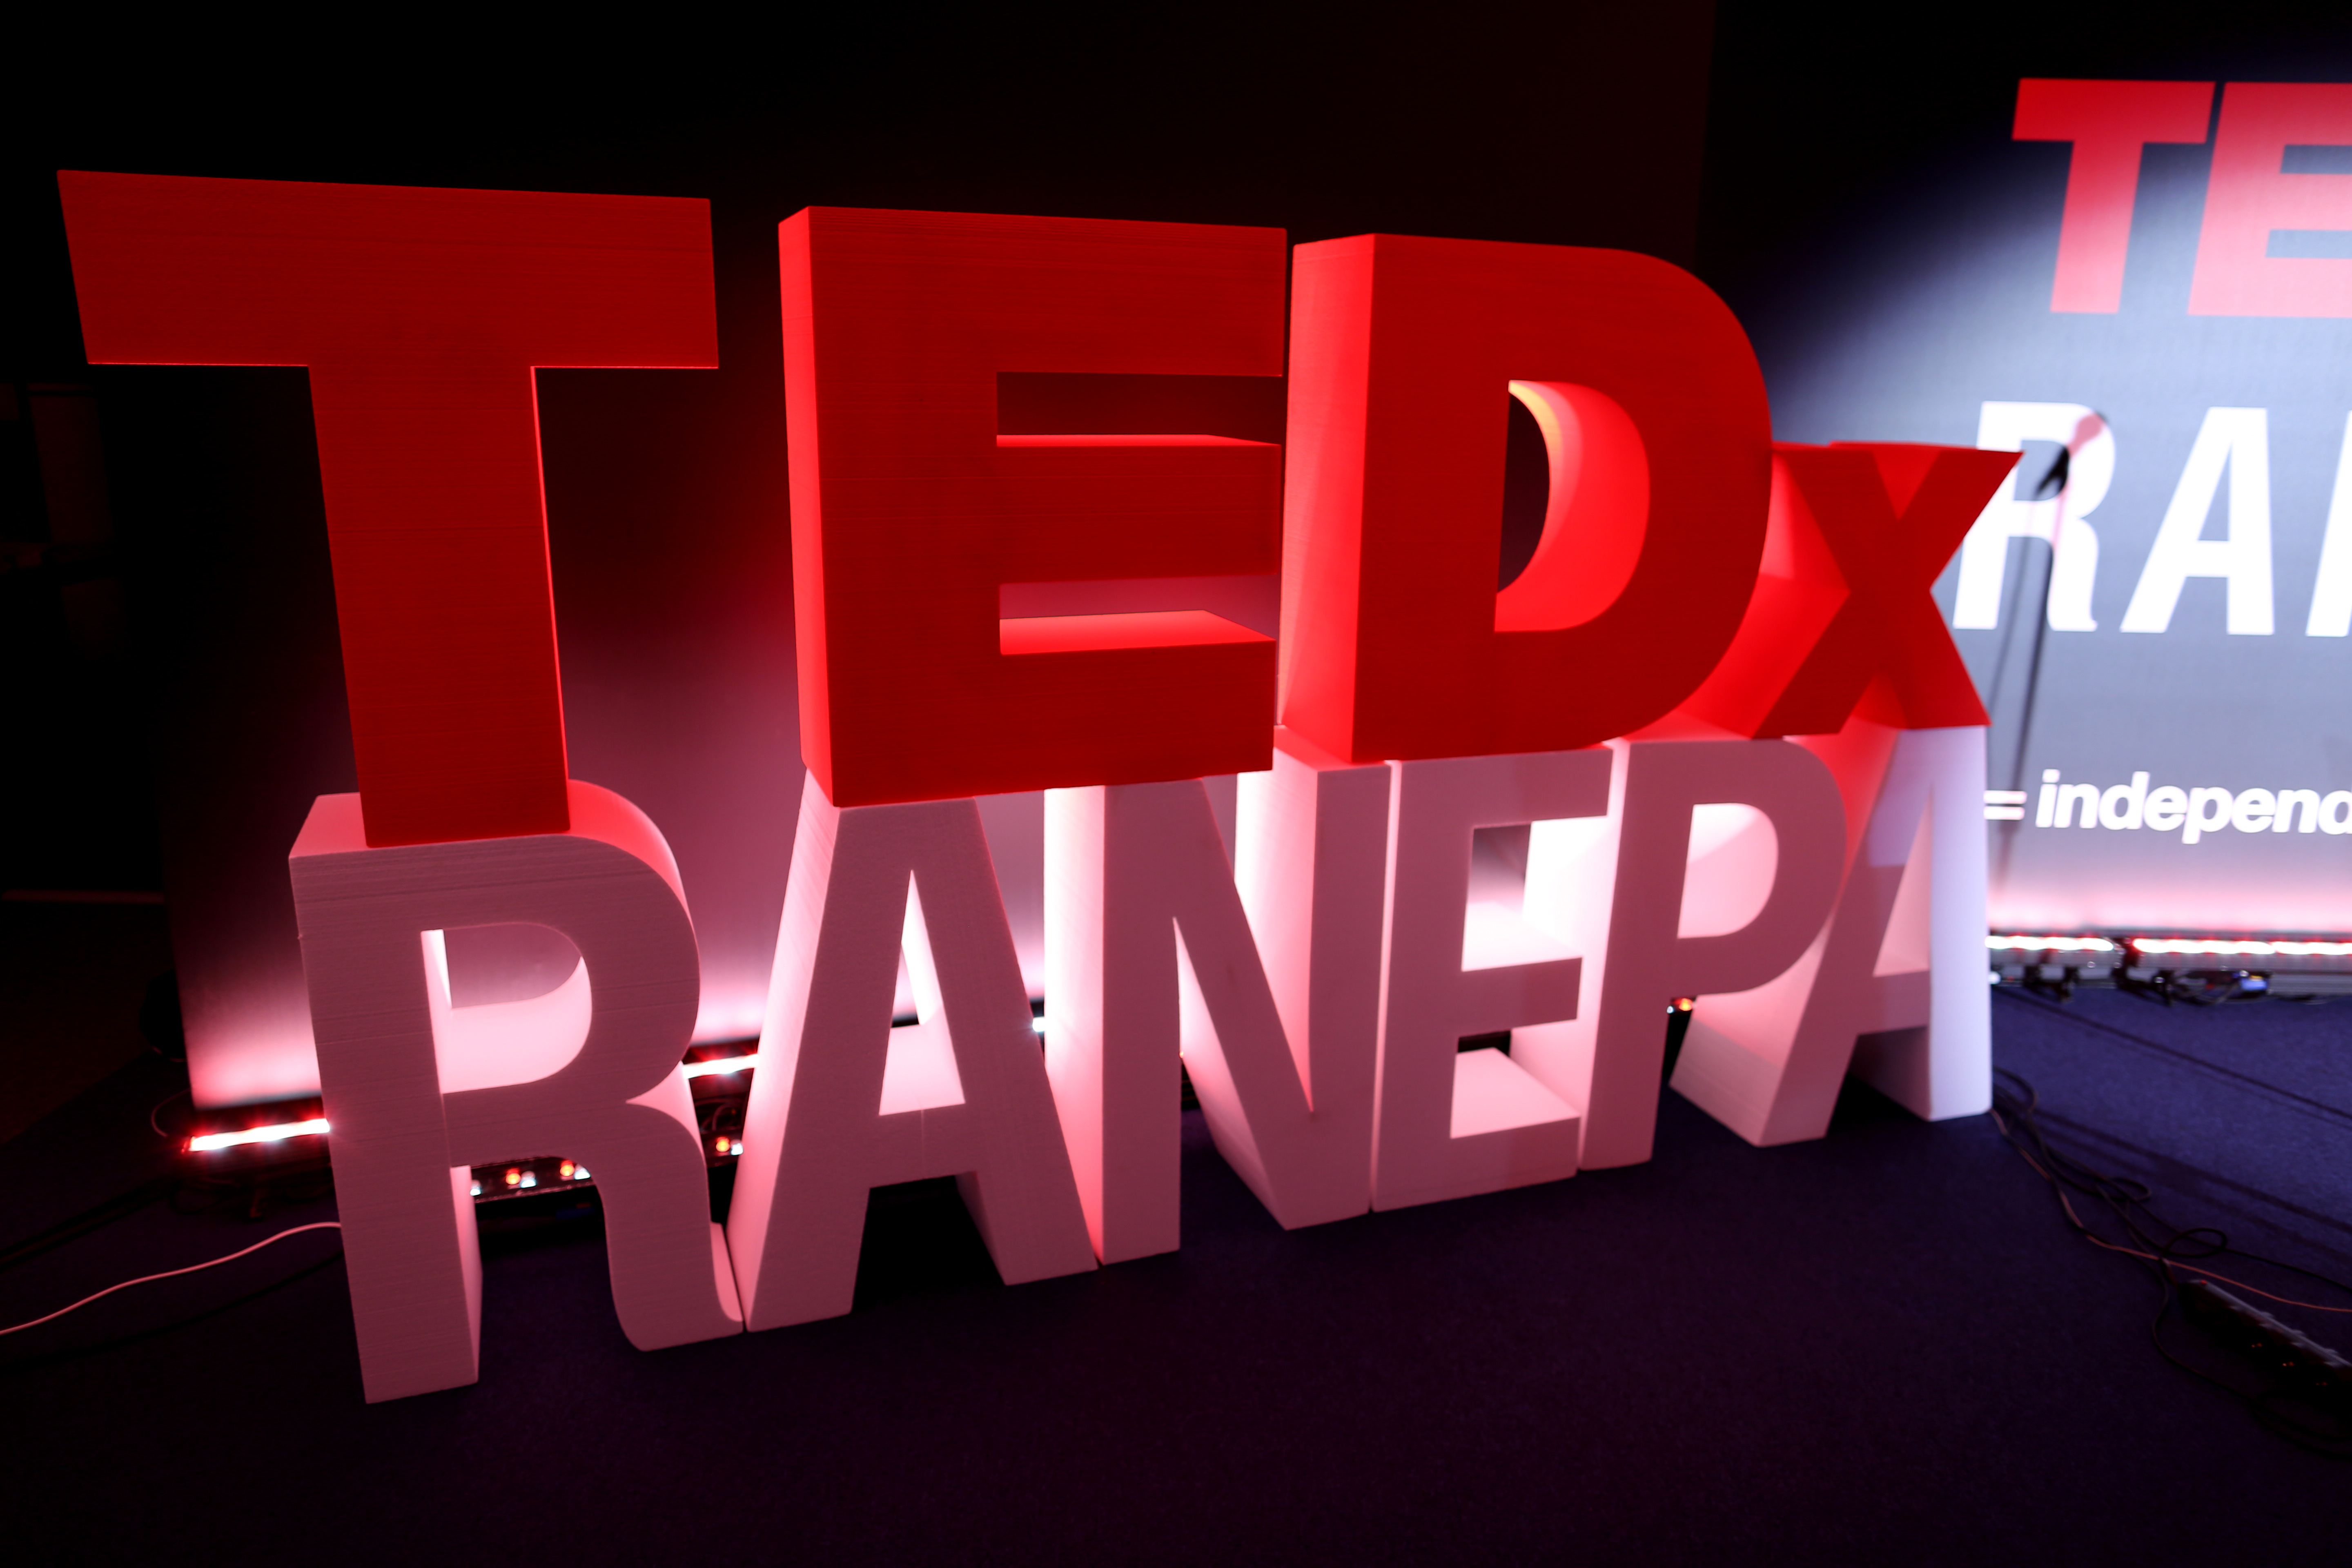 Second TEDxRANEPA conference: ideas worth spreading. 2019